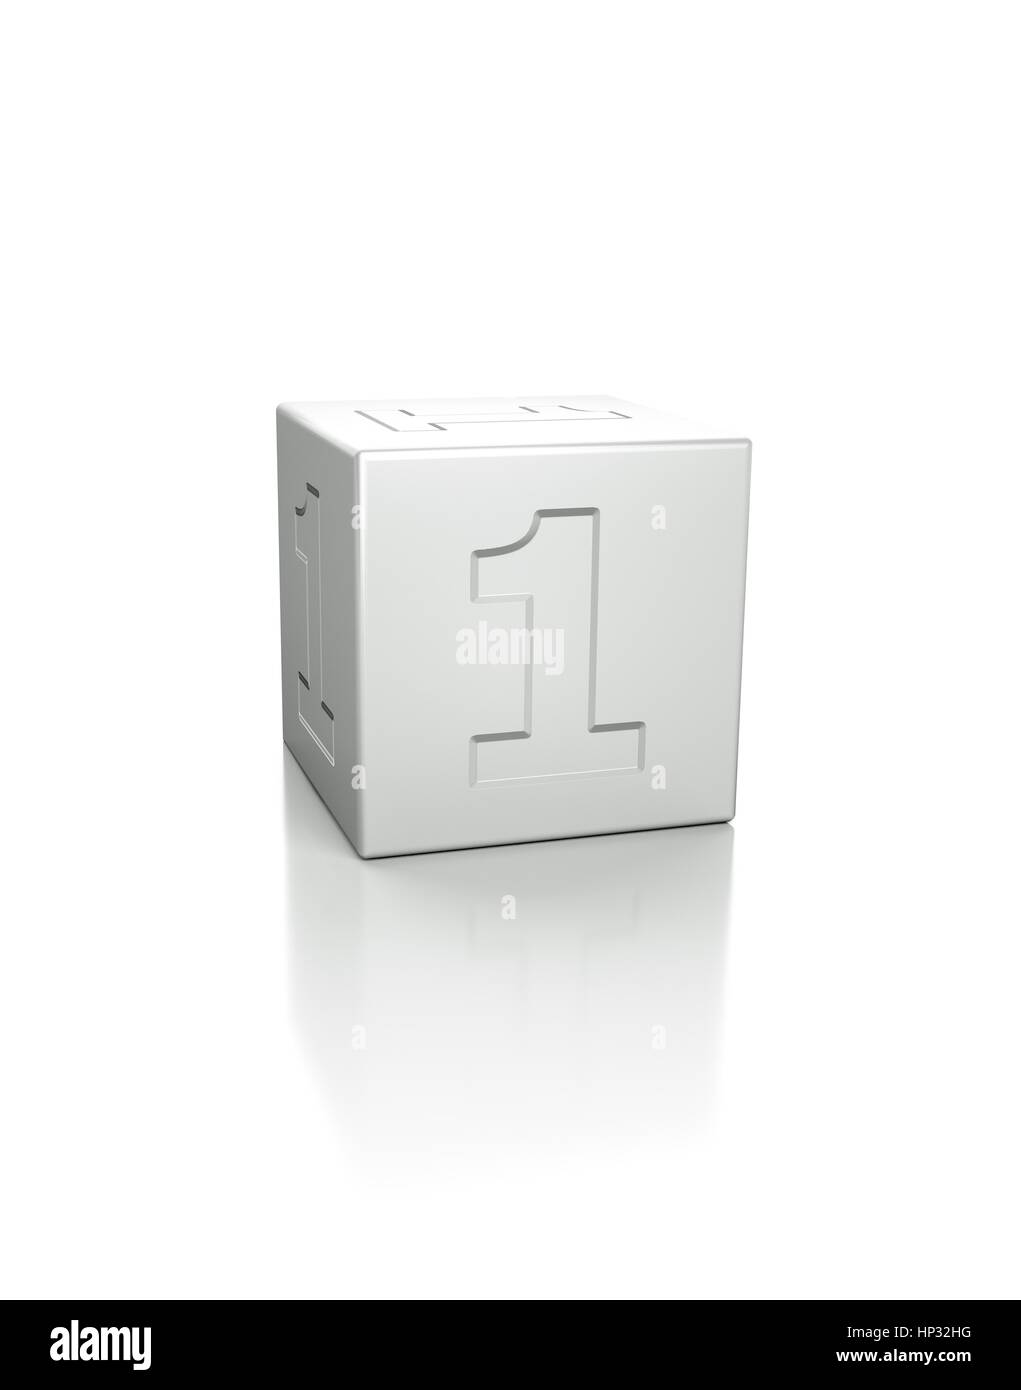 Cube with the number 1 embossed. - Stock Image